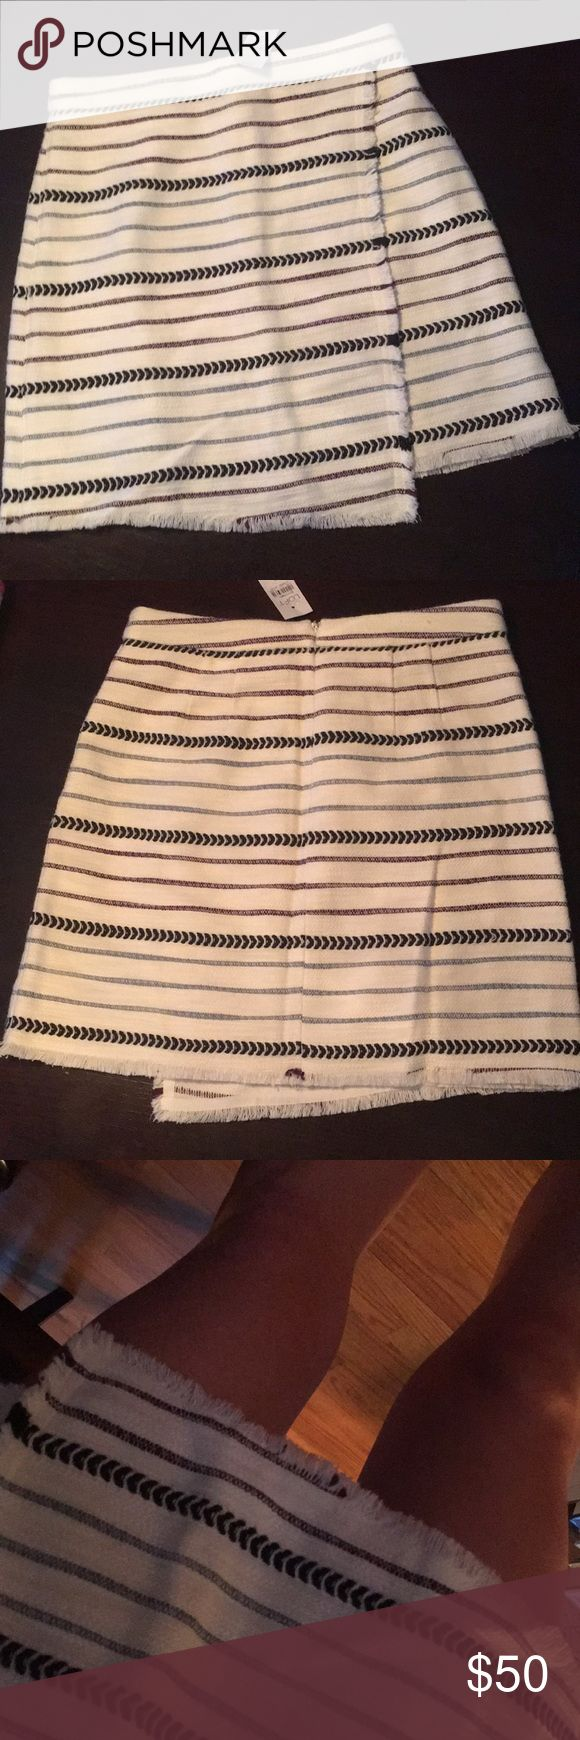 BRAND NEW, with tags, LOFT skirt, size 0 LOFT skirt - Cotton/polyester with side zip - stripe colors incl. plum, navy blue, baby blue - size 0 (runs a size big) - BRAND NEW, never worn LOFT Skirts